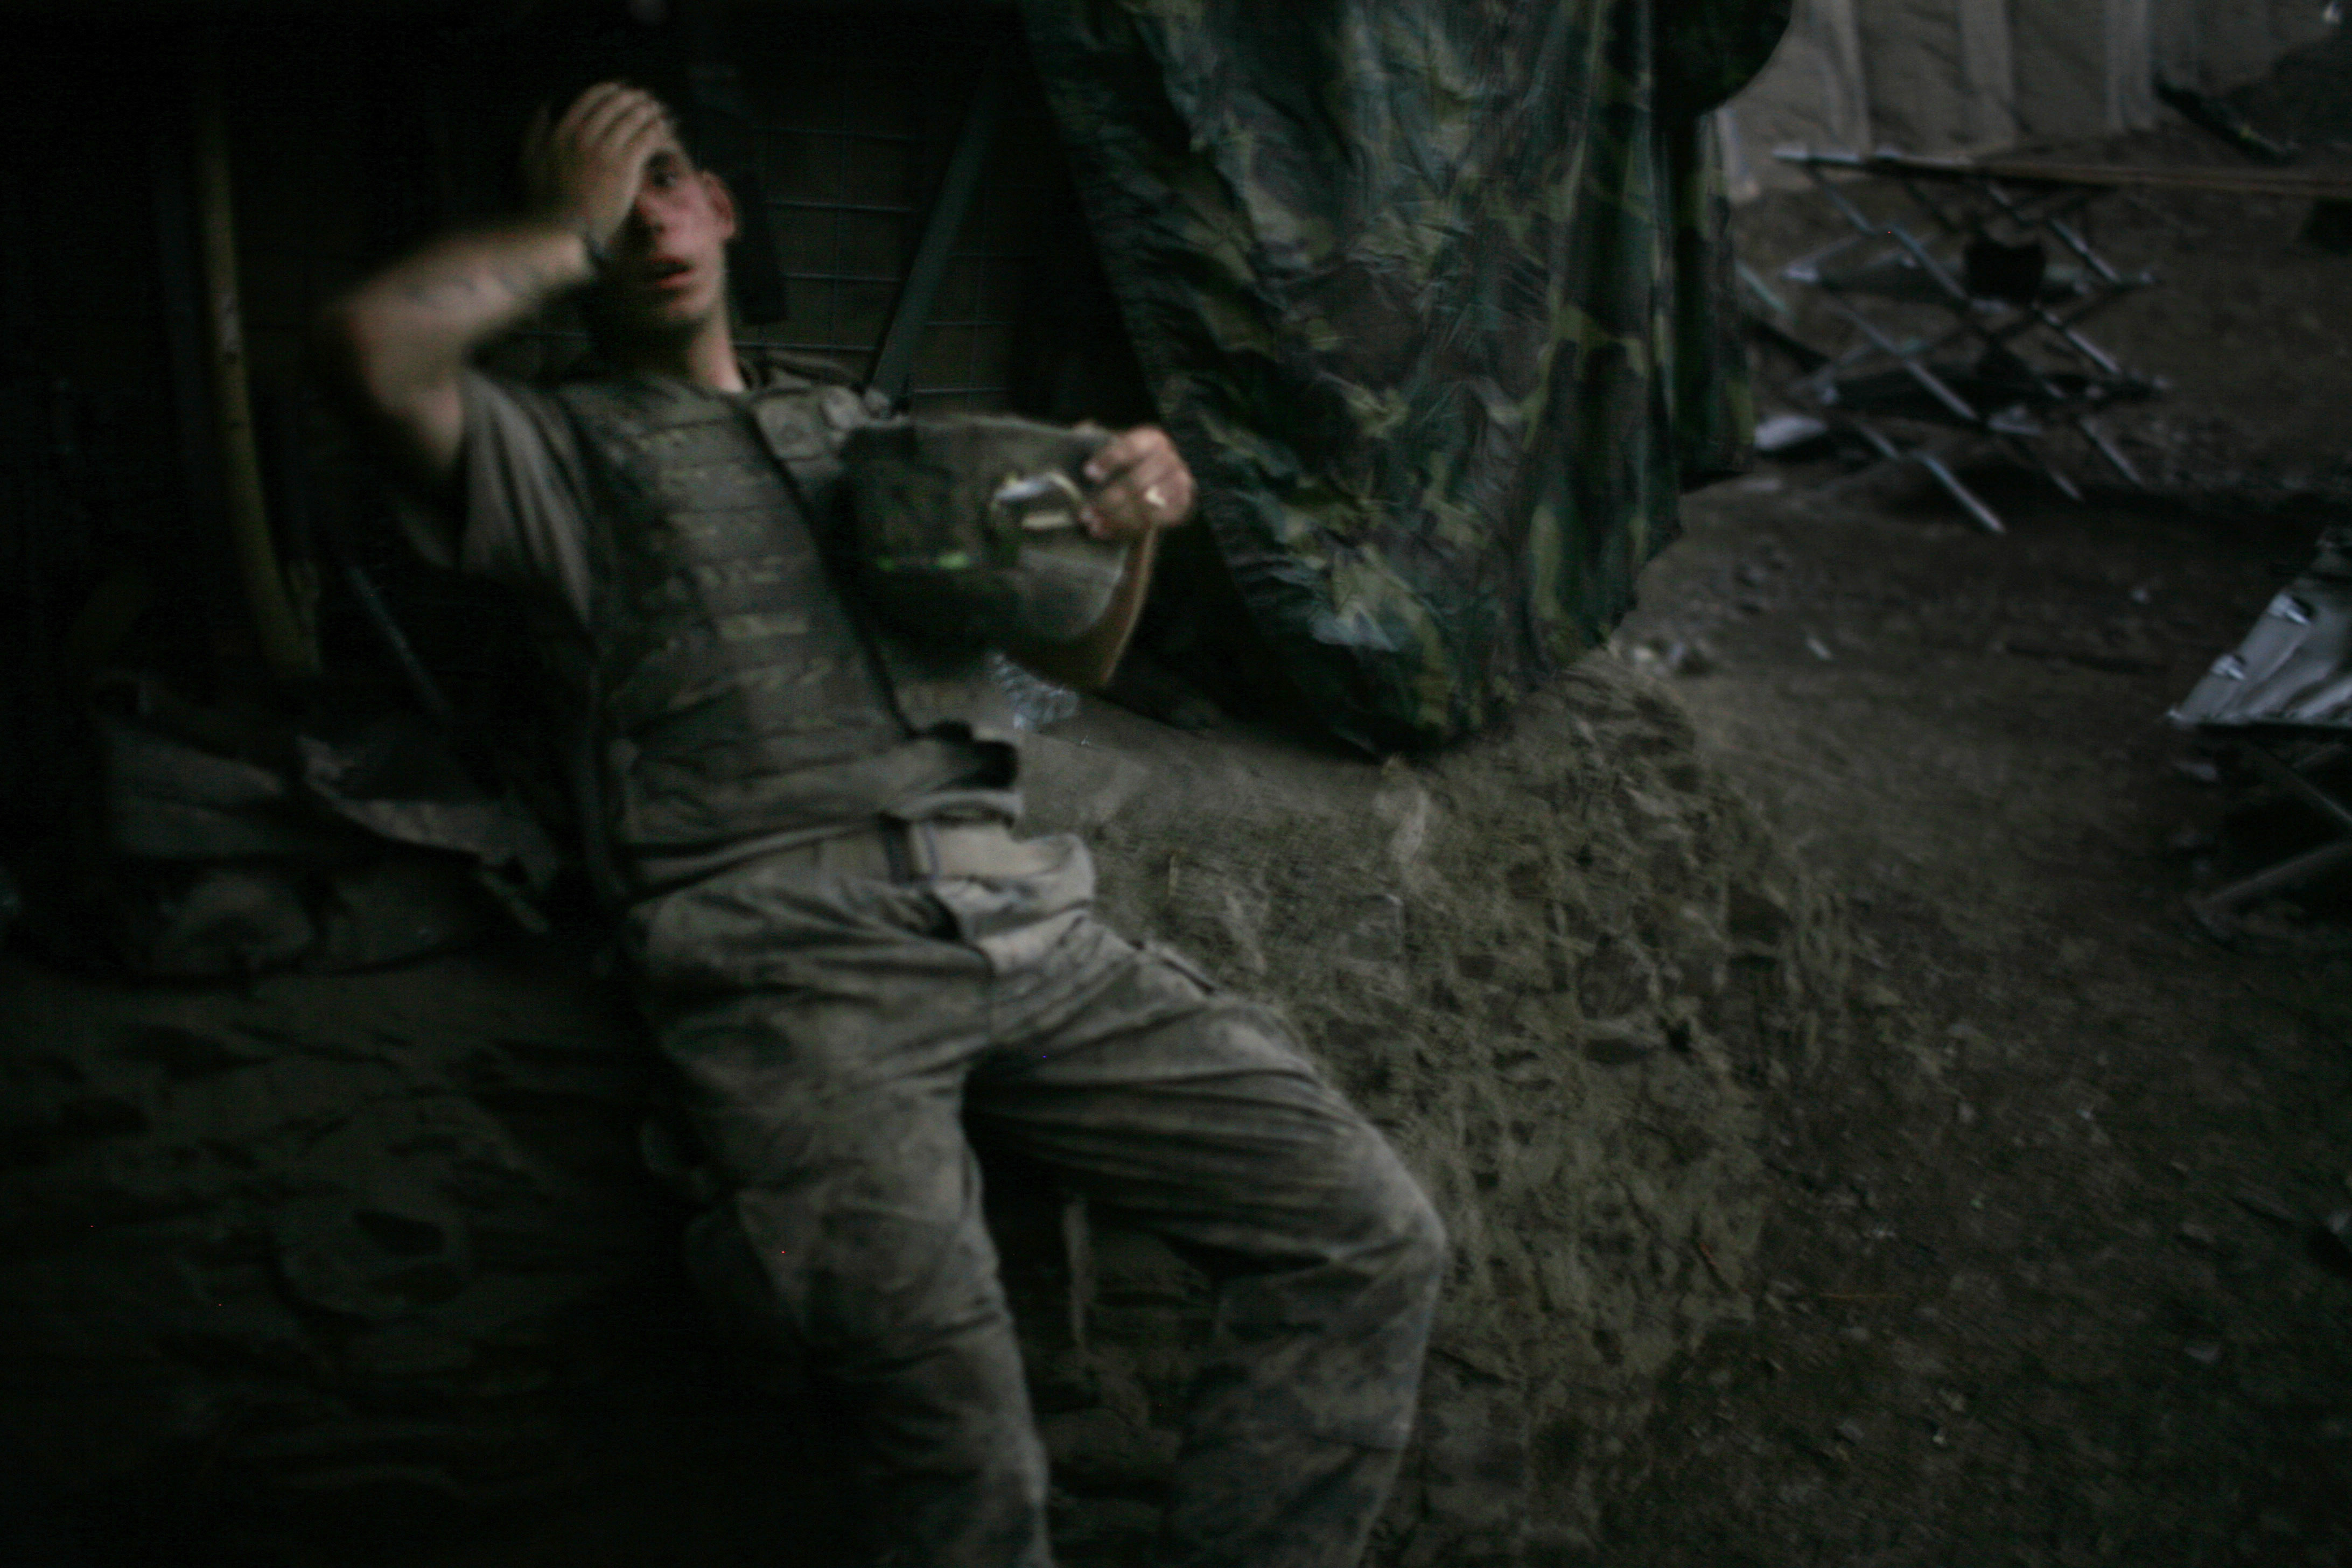 foto: Tim Hetherington, UK for Vanity FairWorld Press Photo 2007, Afghanistan 16 september 2007